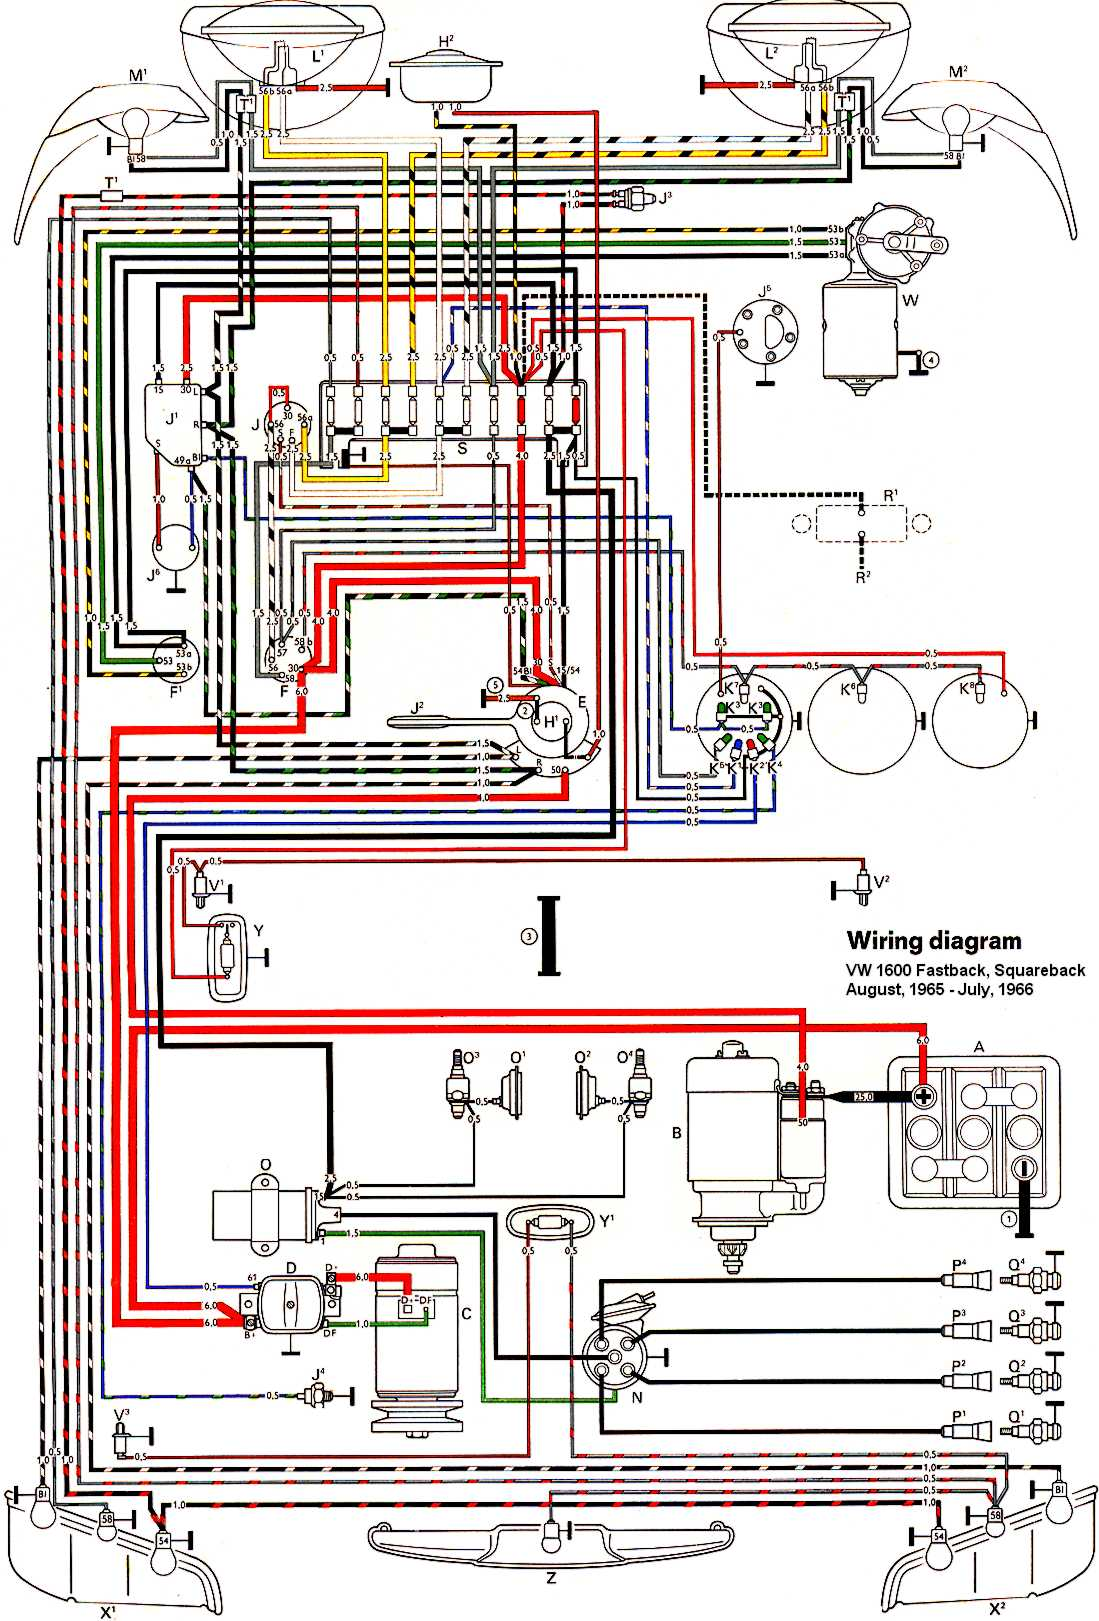 thesamba com type 3 wiring diagrams VW Voltage Regulator Wiring Diagram Vw Type 3 Wiring Diagram #5